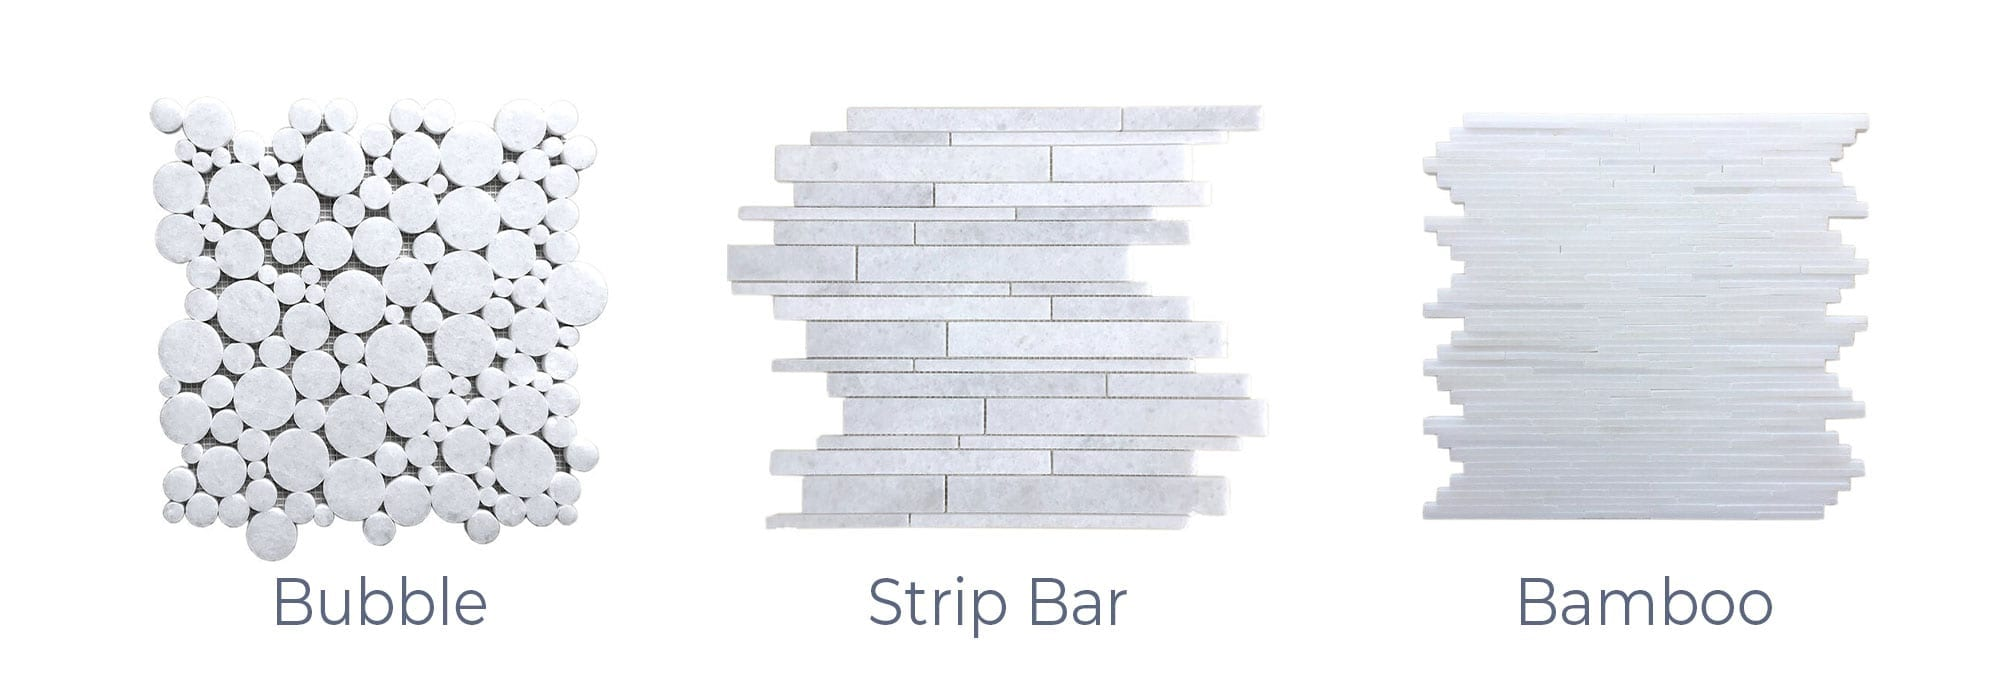 Stoneline-Group-Bianco-Ibiza-Marble-Collection-Marble-Mosaic-varieties-Bubble-Strip-Bar-Bamboo-Pictures